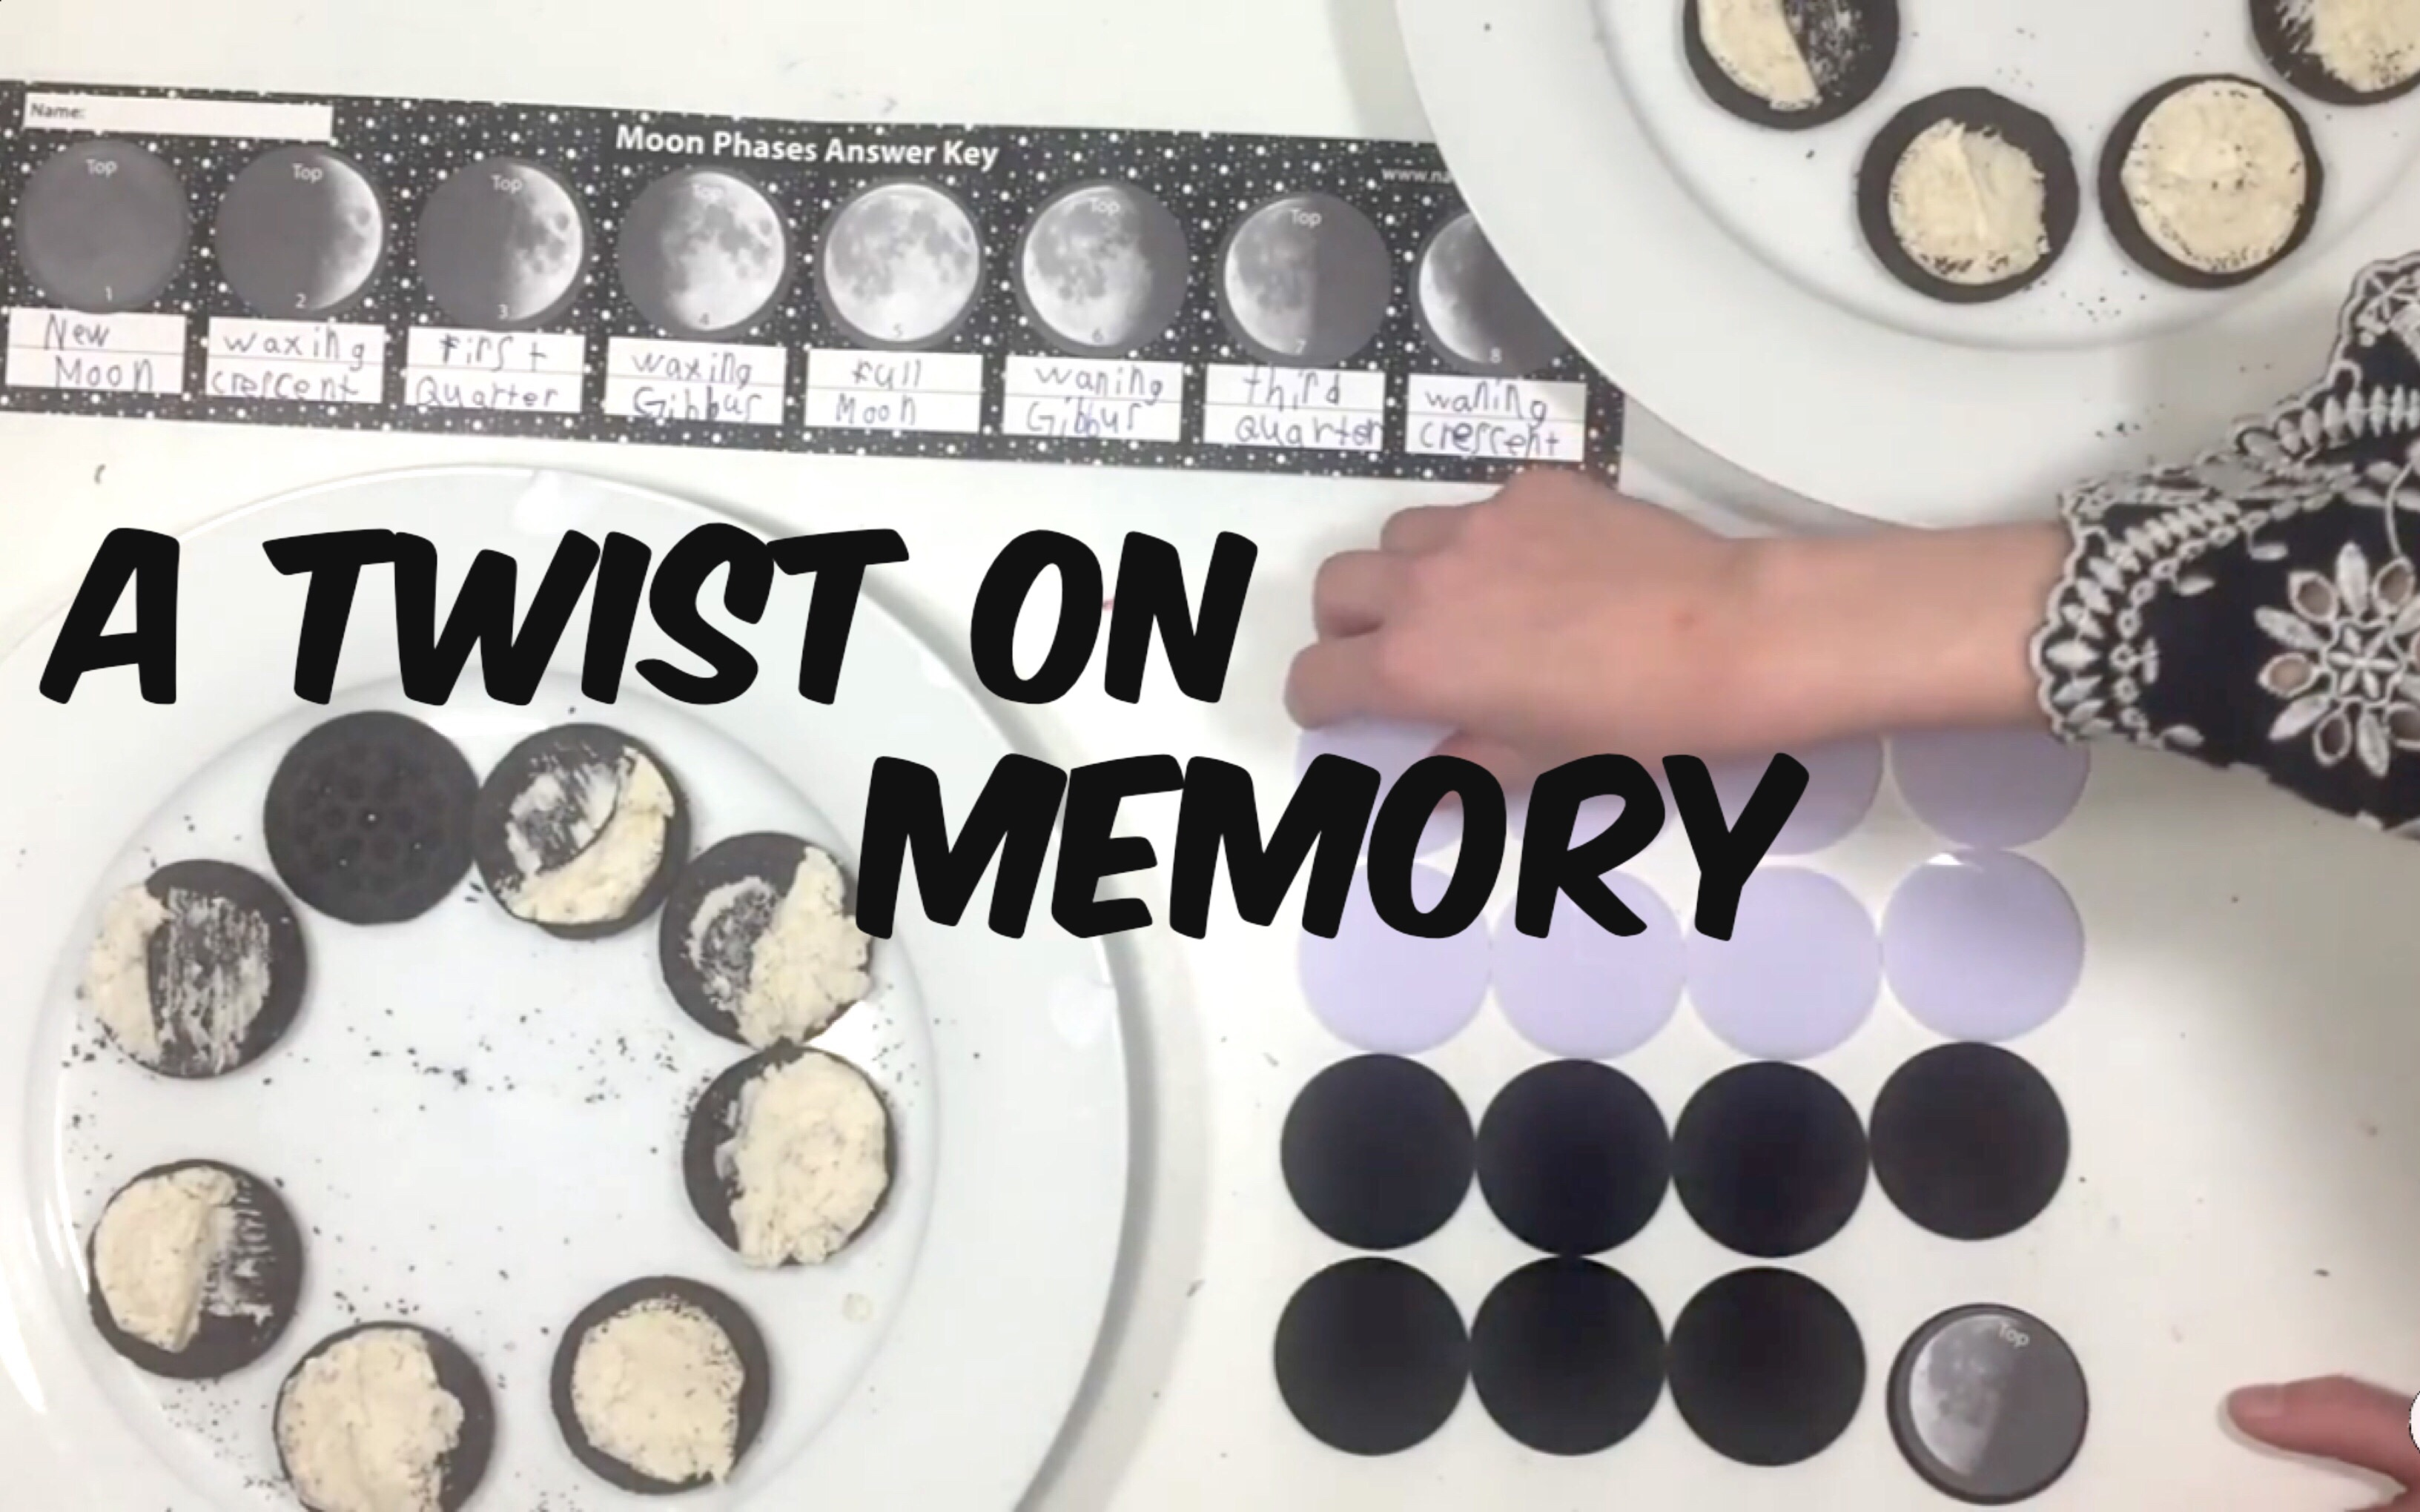 EDIBLE EDUCATION | PHASES OF THE MOON